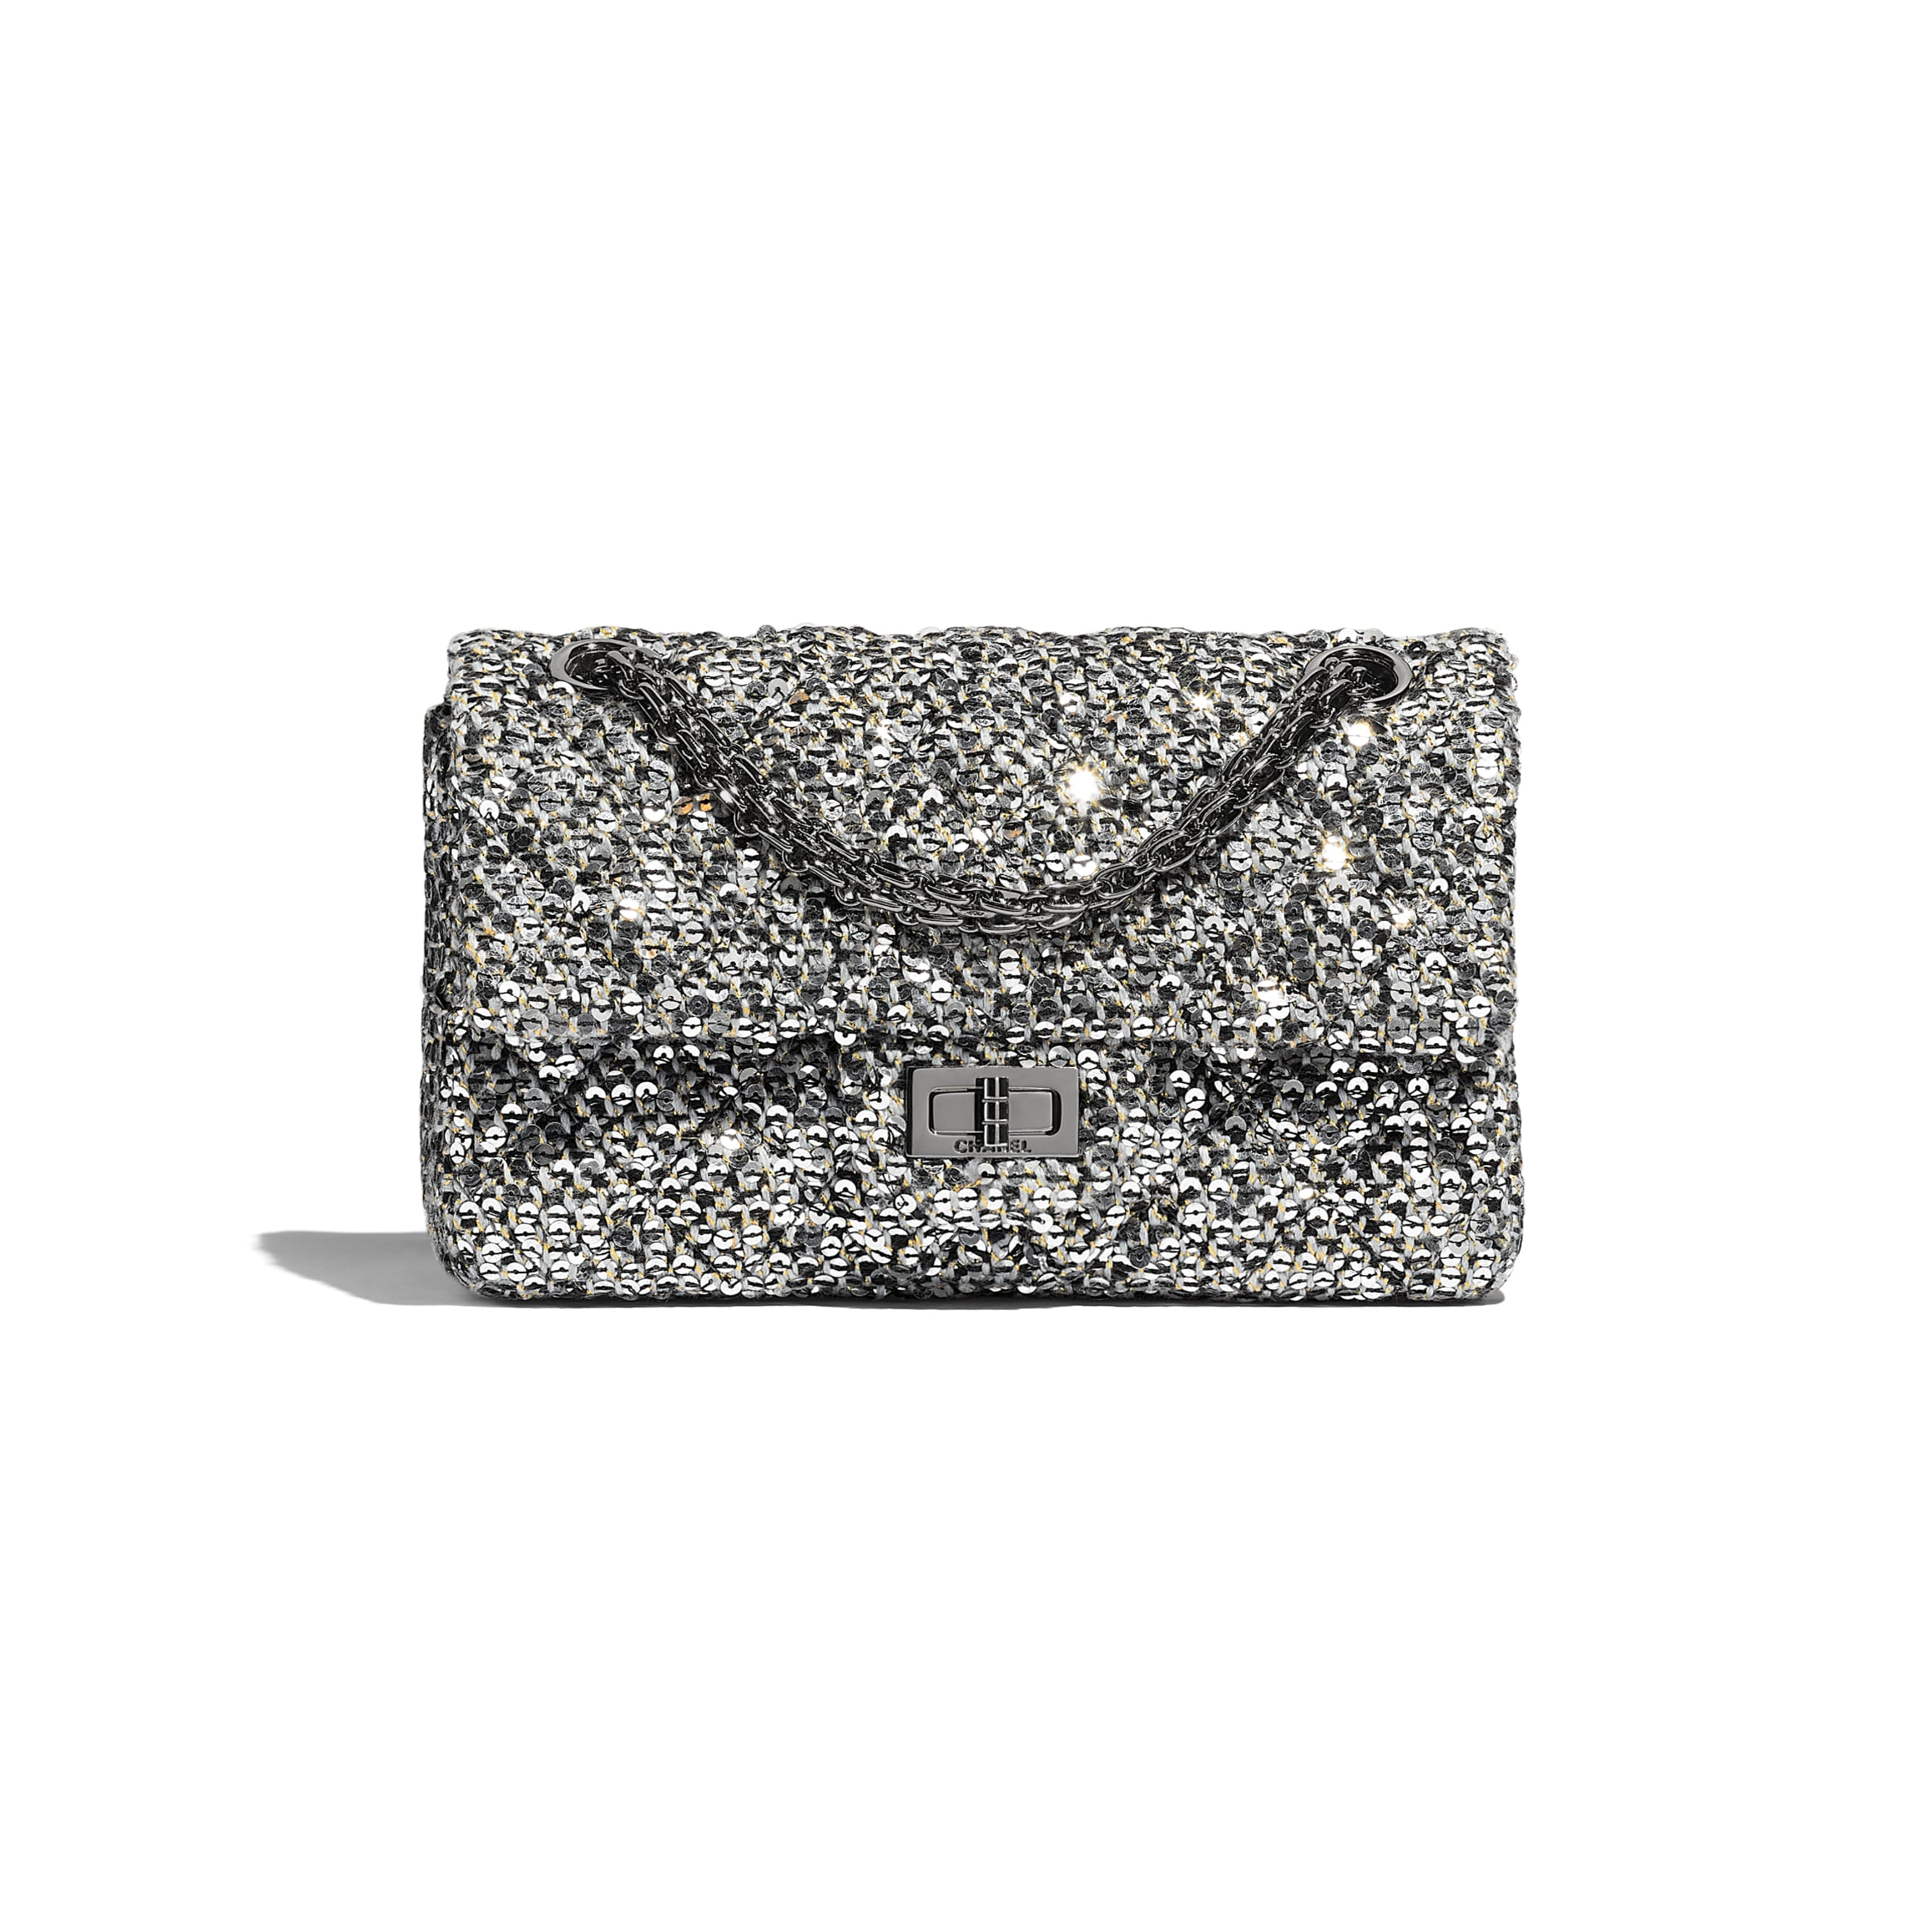 Small 2.55 Handbag - Silver, Black & Gold - Tweed, Sequins & Ruthenium-Finish Metal - CHANEL - Default view - see standard sized version